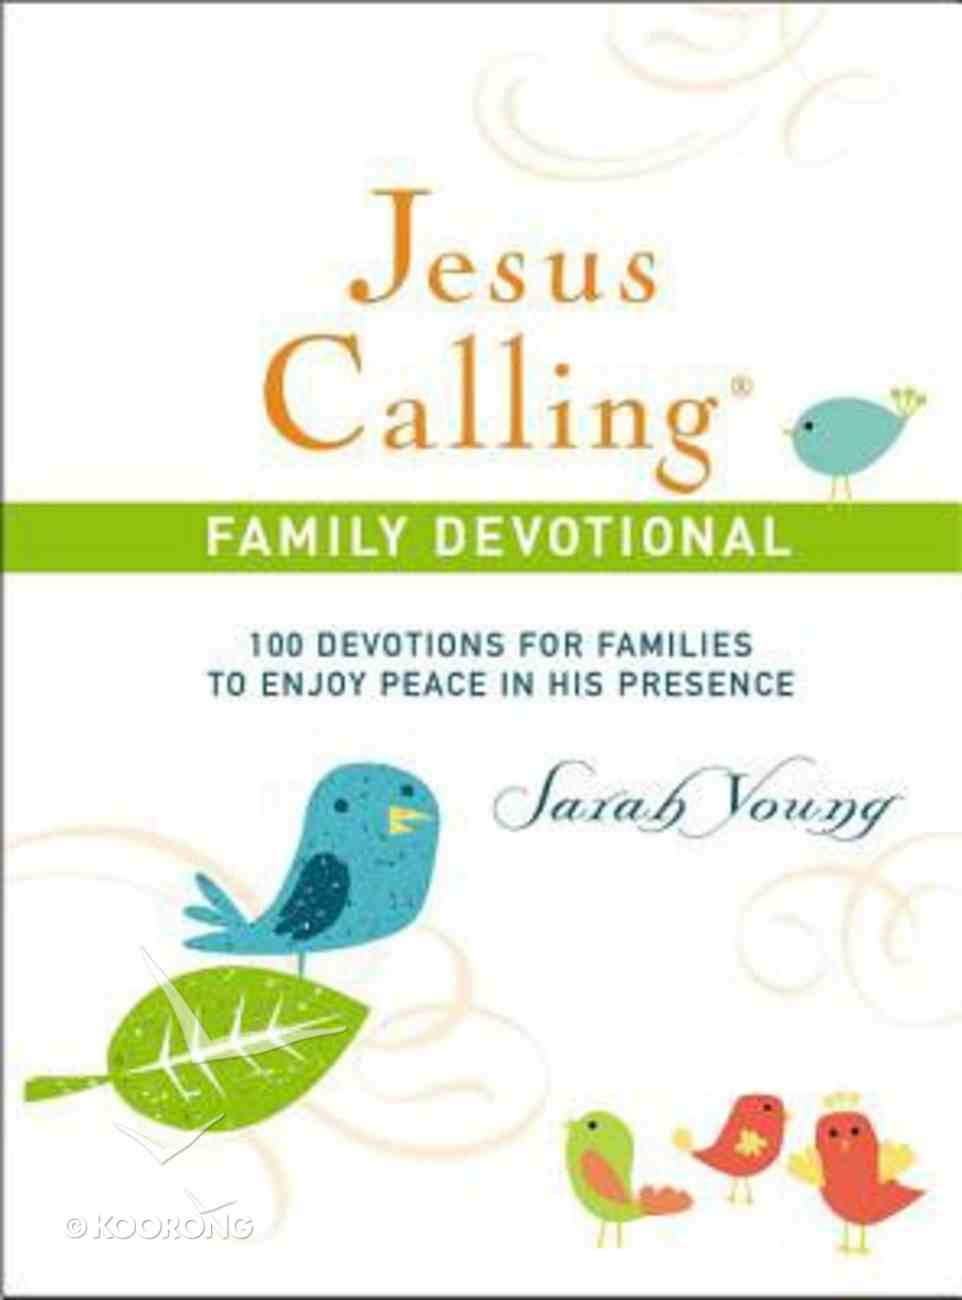 Jesus Calling Family Devotional: 100 Devotions For Families to Enjoy Peace in His Presence Hardback